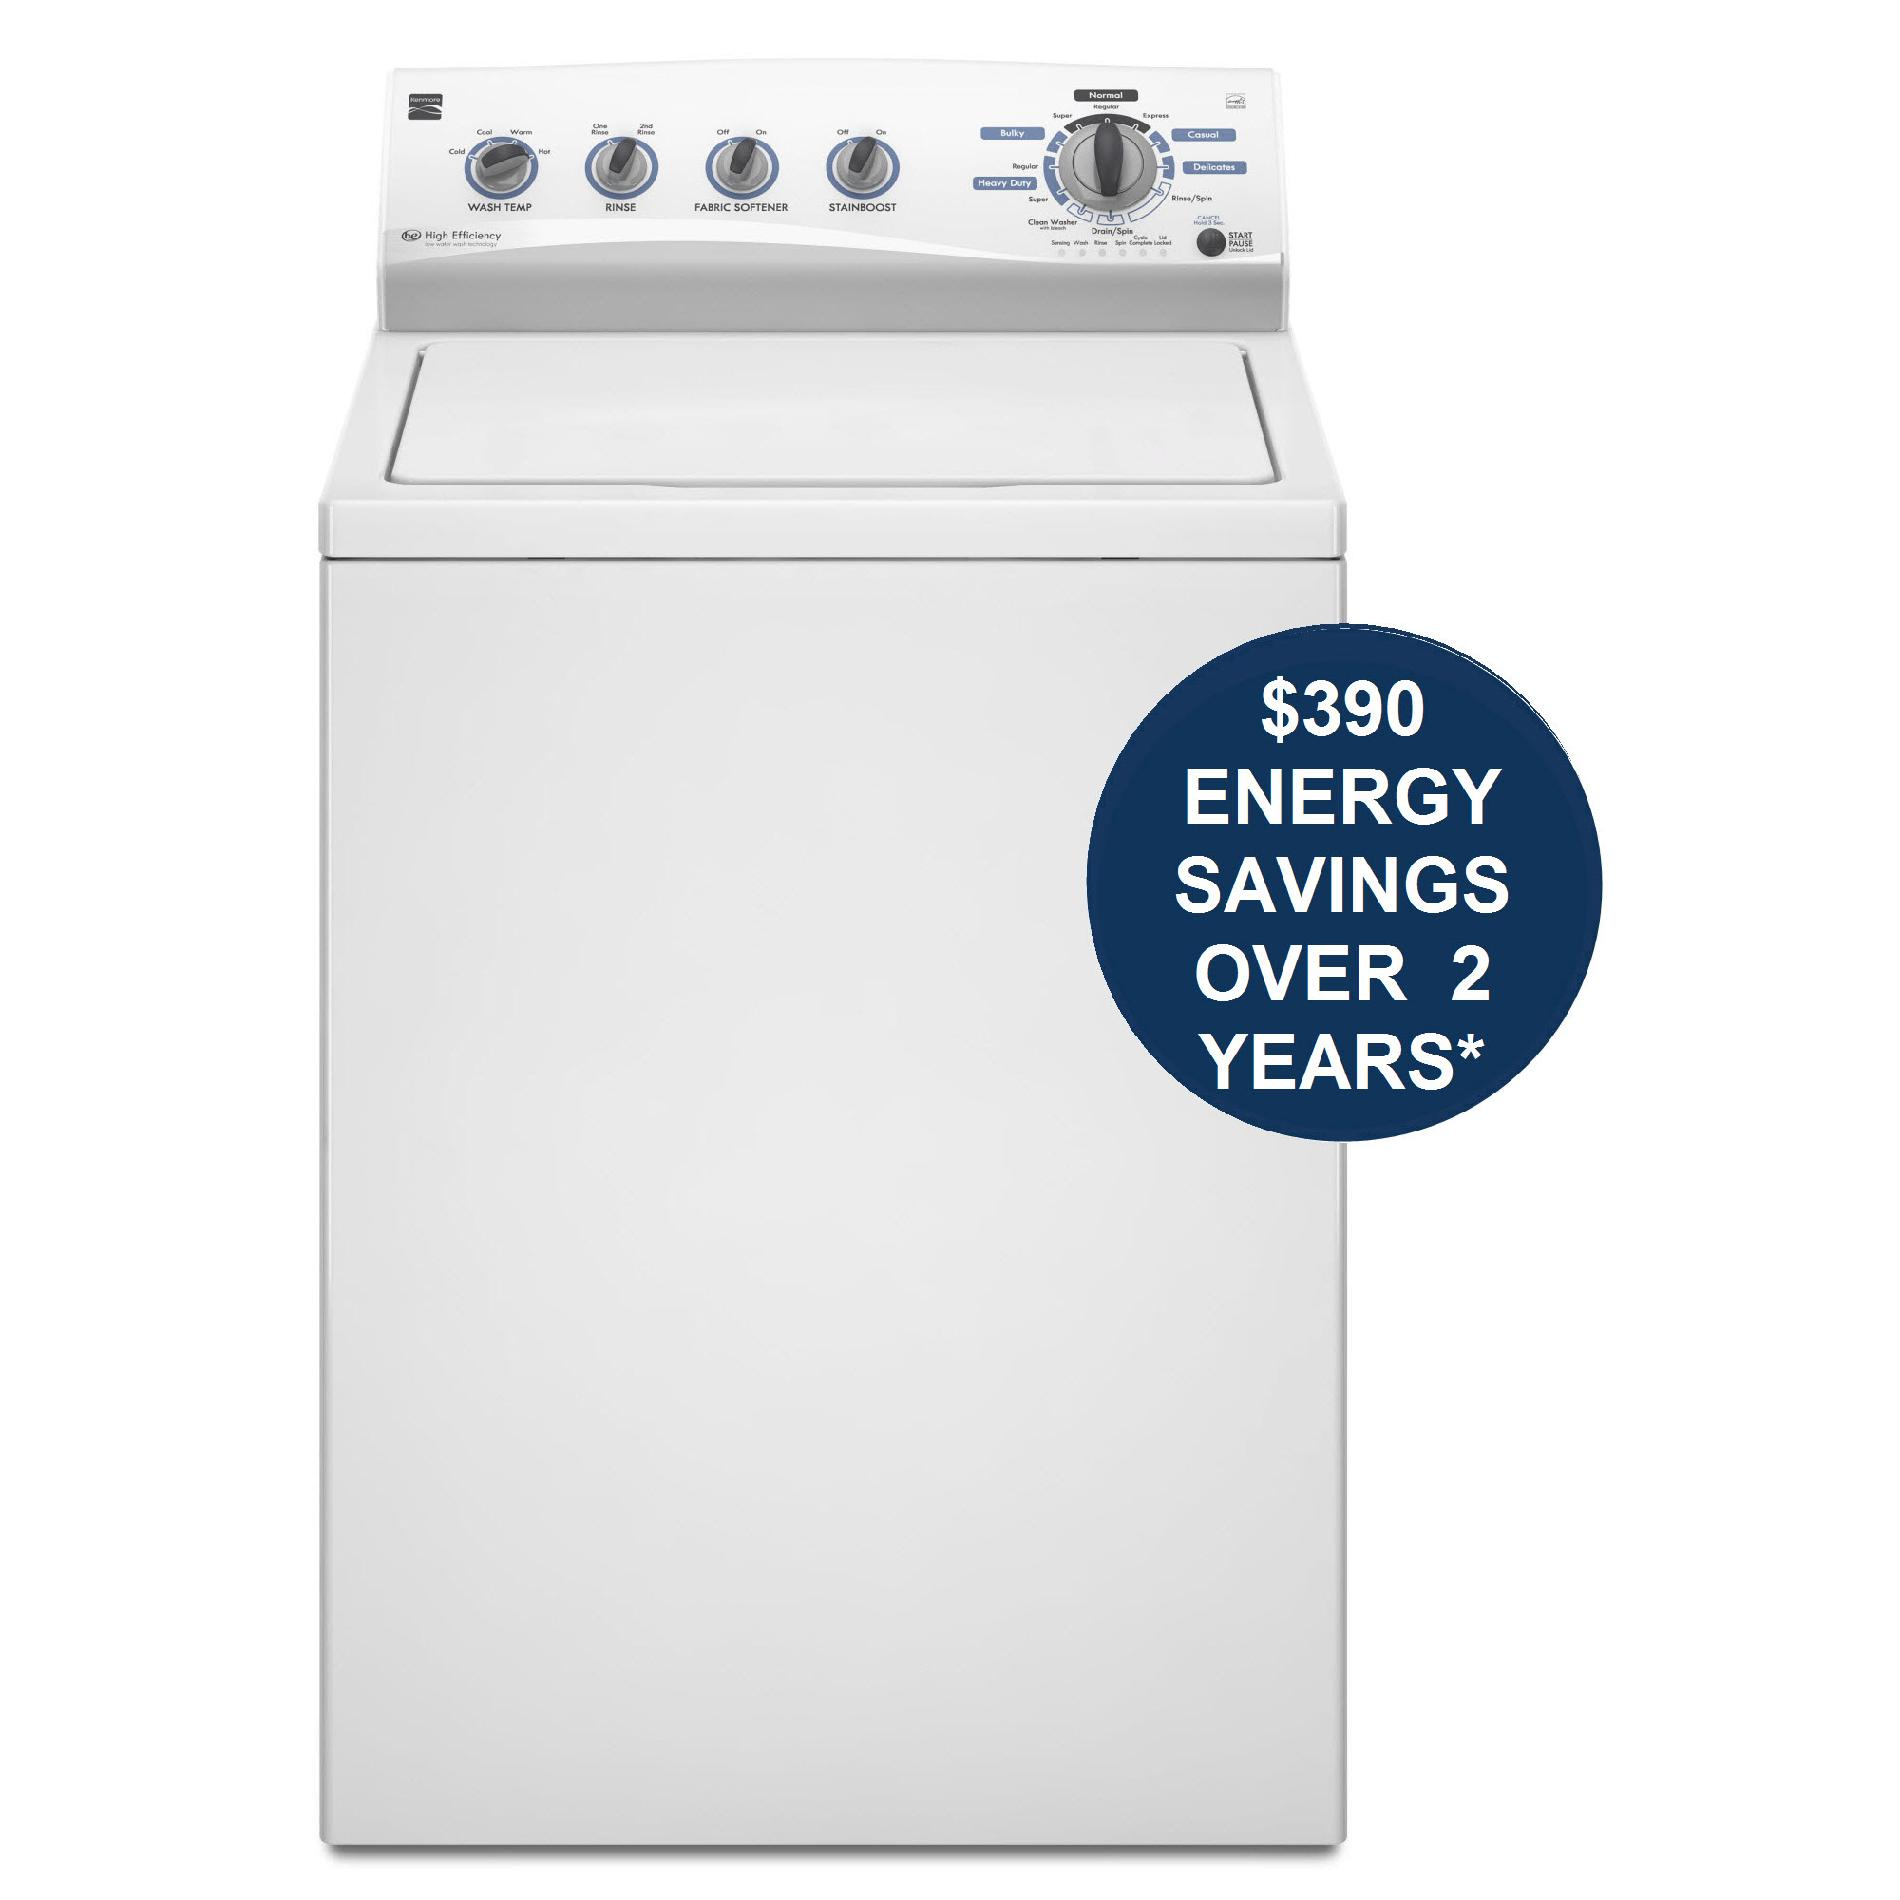 Kenmore 3.6 cu. ft. High-Efficiency Top-Load  Washer - White